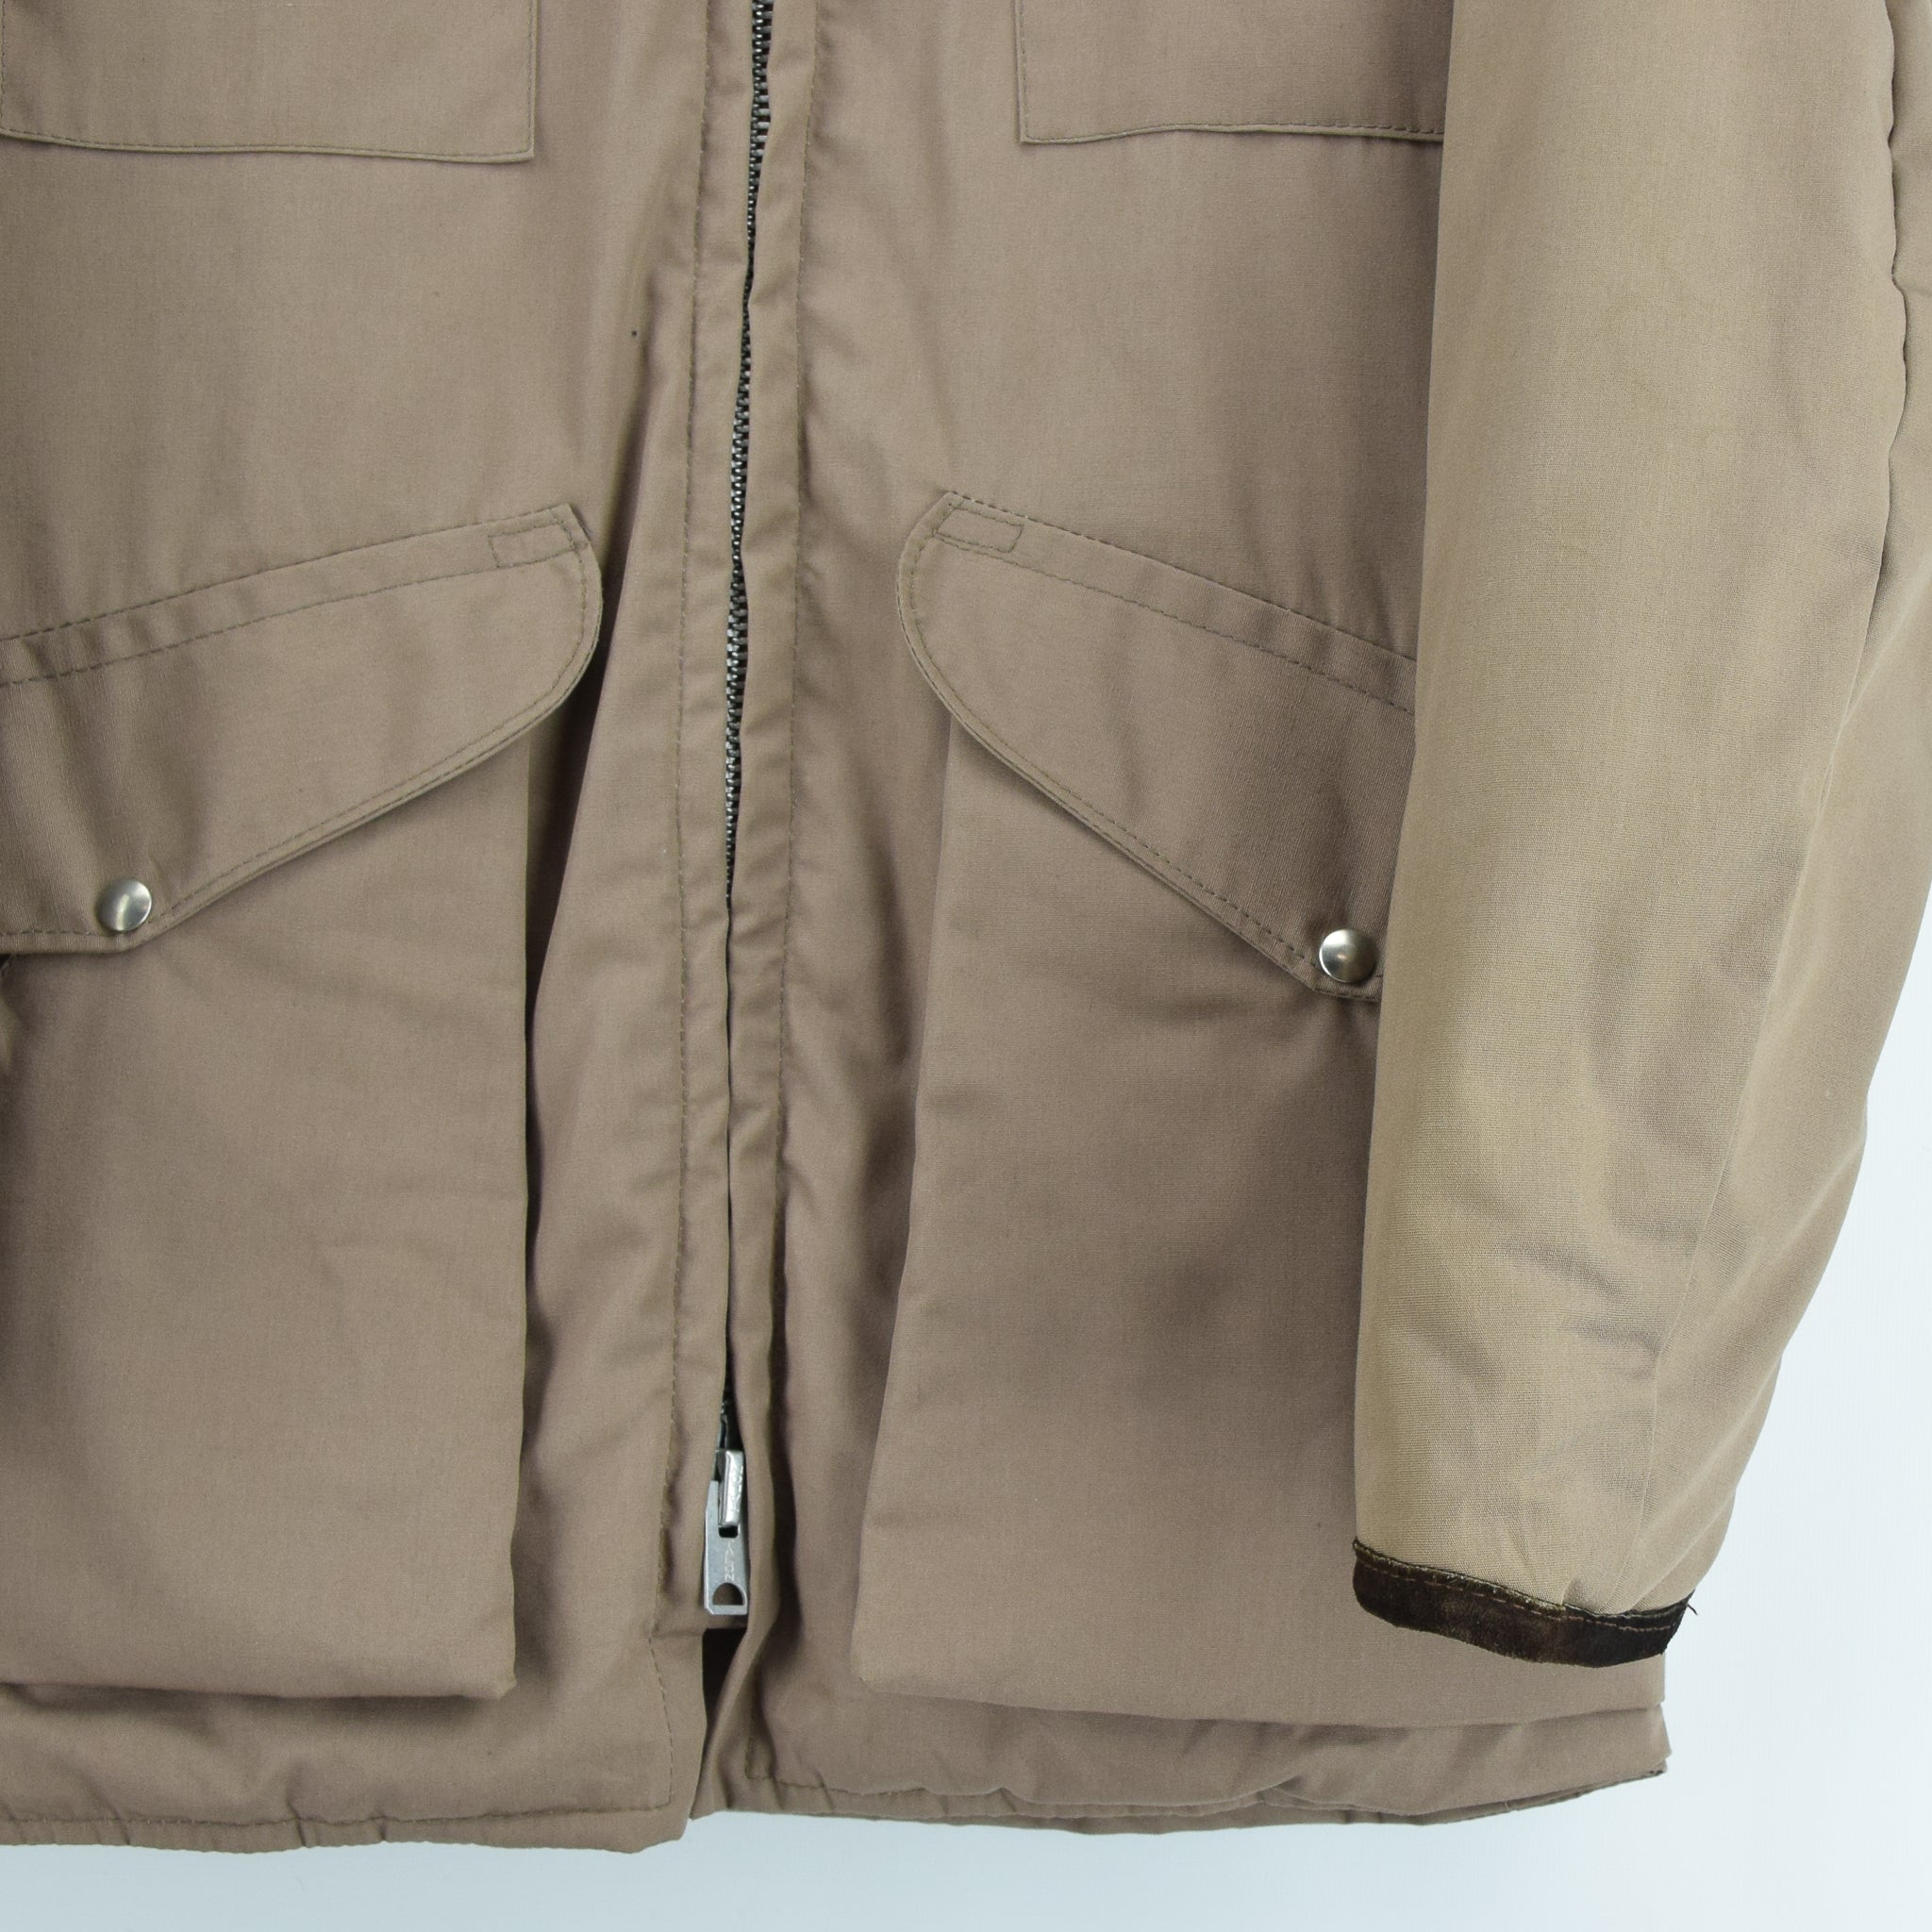 Vintage 70s 10-X Mfg Co USA Quilted Hunting Shooting Jacket Talon Zip XS / S front hem